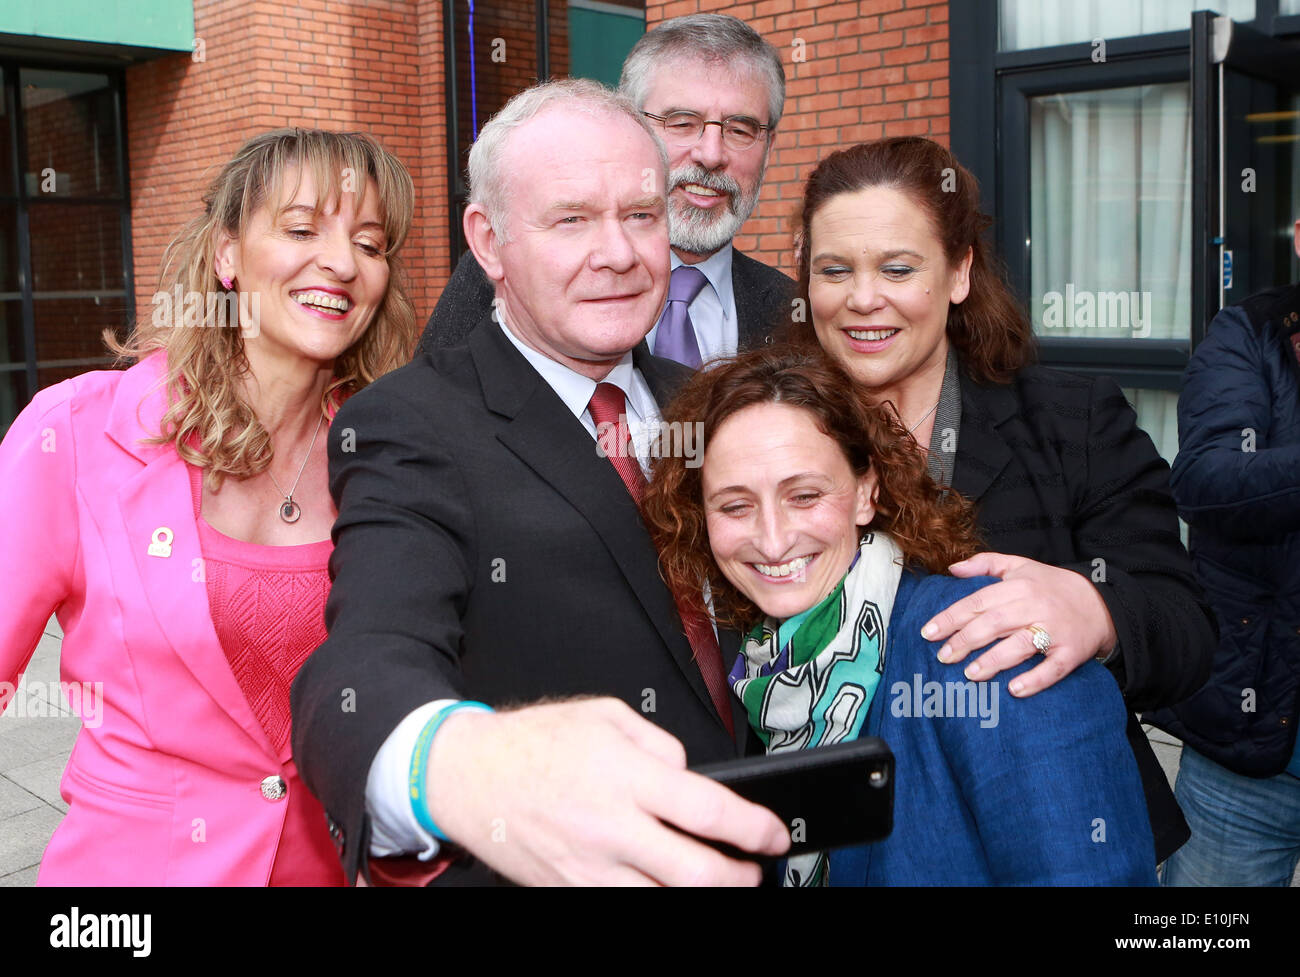 Sinn Fein's Martin McGuinness sets up selfie with Party Leader Gerry Adams, Martina Anderson, Lynn Boylan & Mary Lou McDonald at - Stock Image